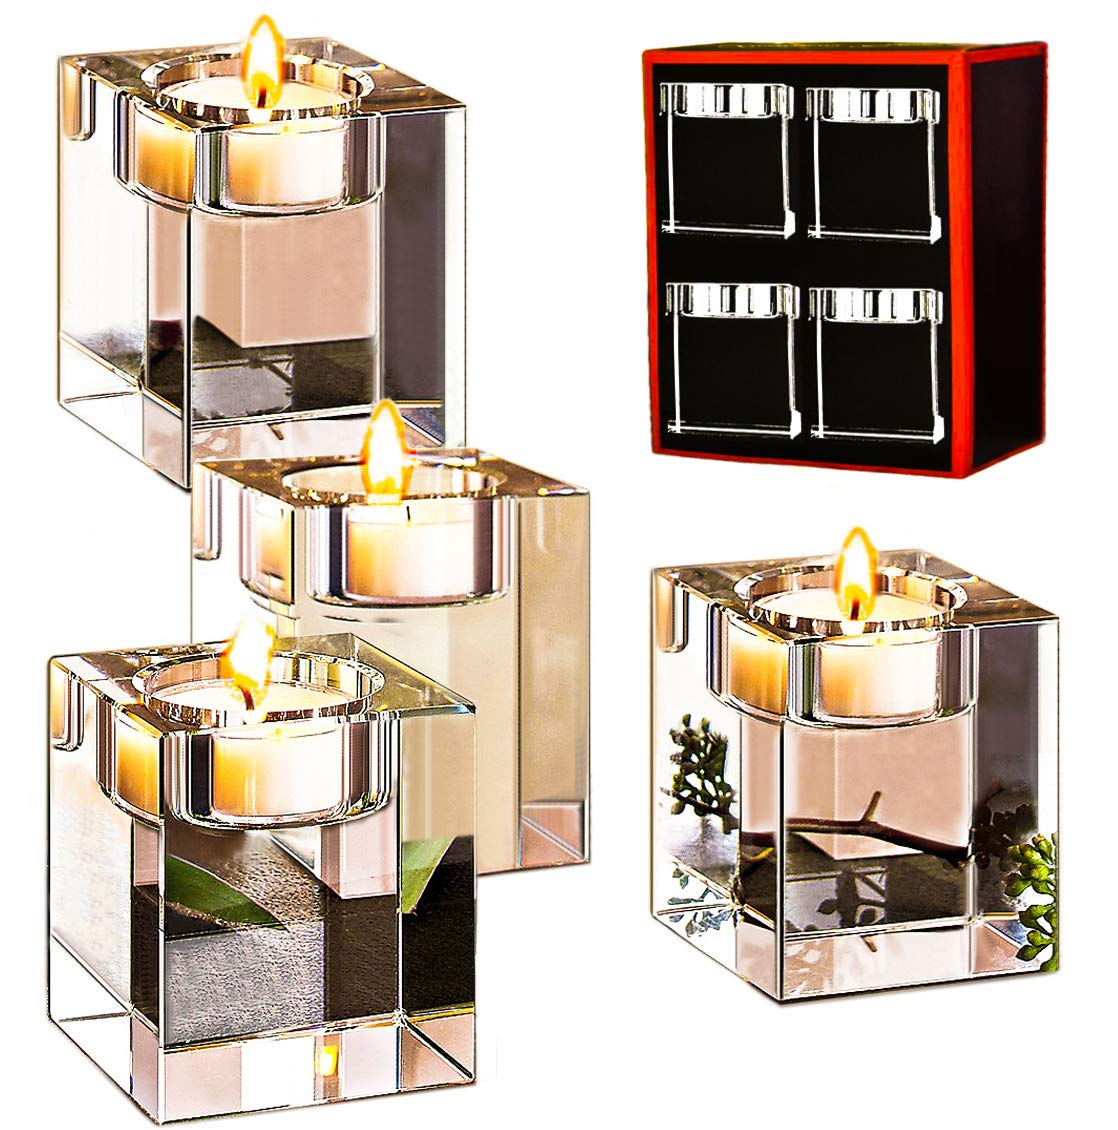 Le Sens Amazing Home Crystal Candle Holders Set of 4,Elegant Heavy Glass Cuboid Tealight Holders,Clear Square Glass Cube Decoration for Ceremony Wedding Centerpiece and Home Decor